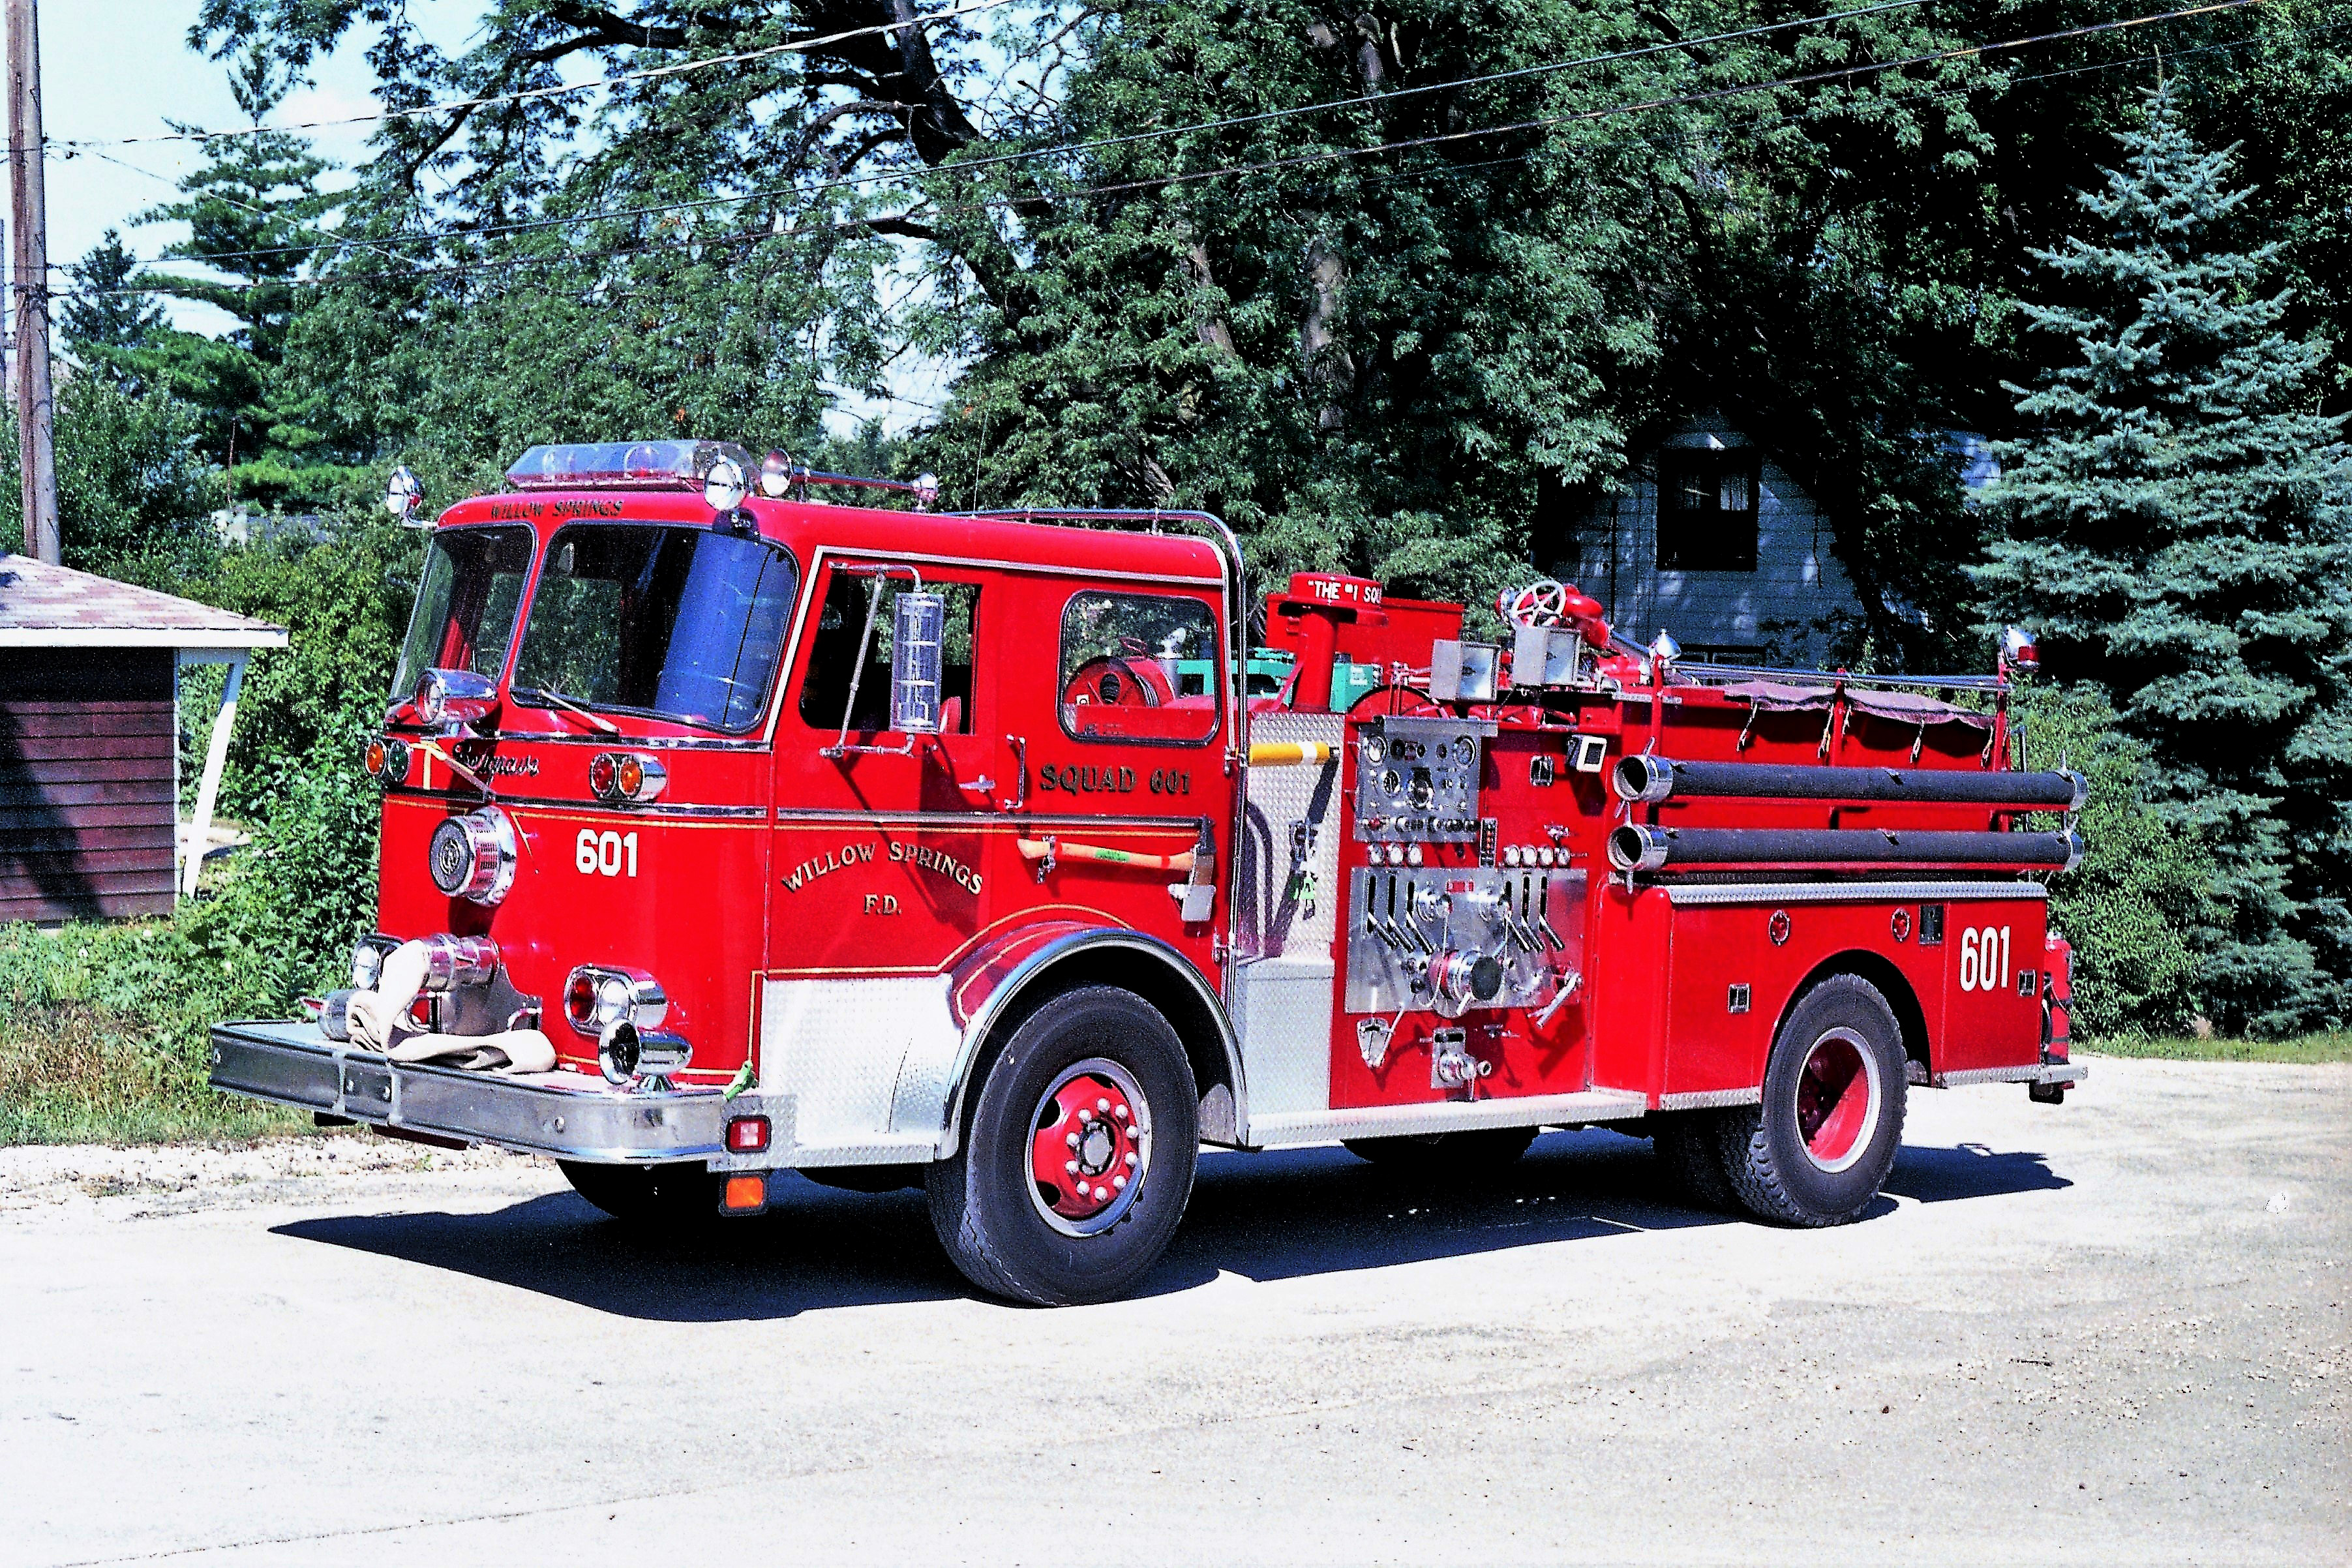 WILLOW SPRINGS ENGINE 601 1967 SEAGRAVE 1000-500 X- BEDFORD PARK FD